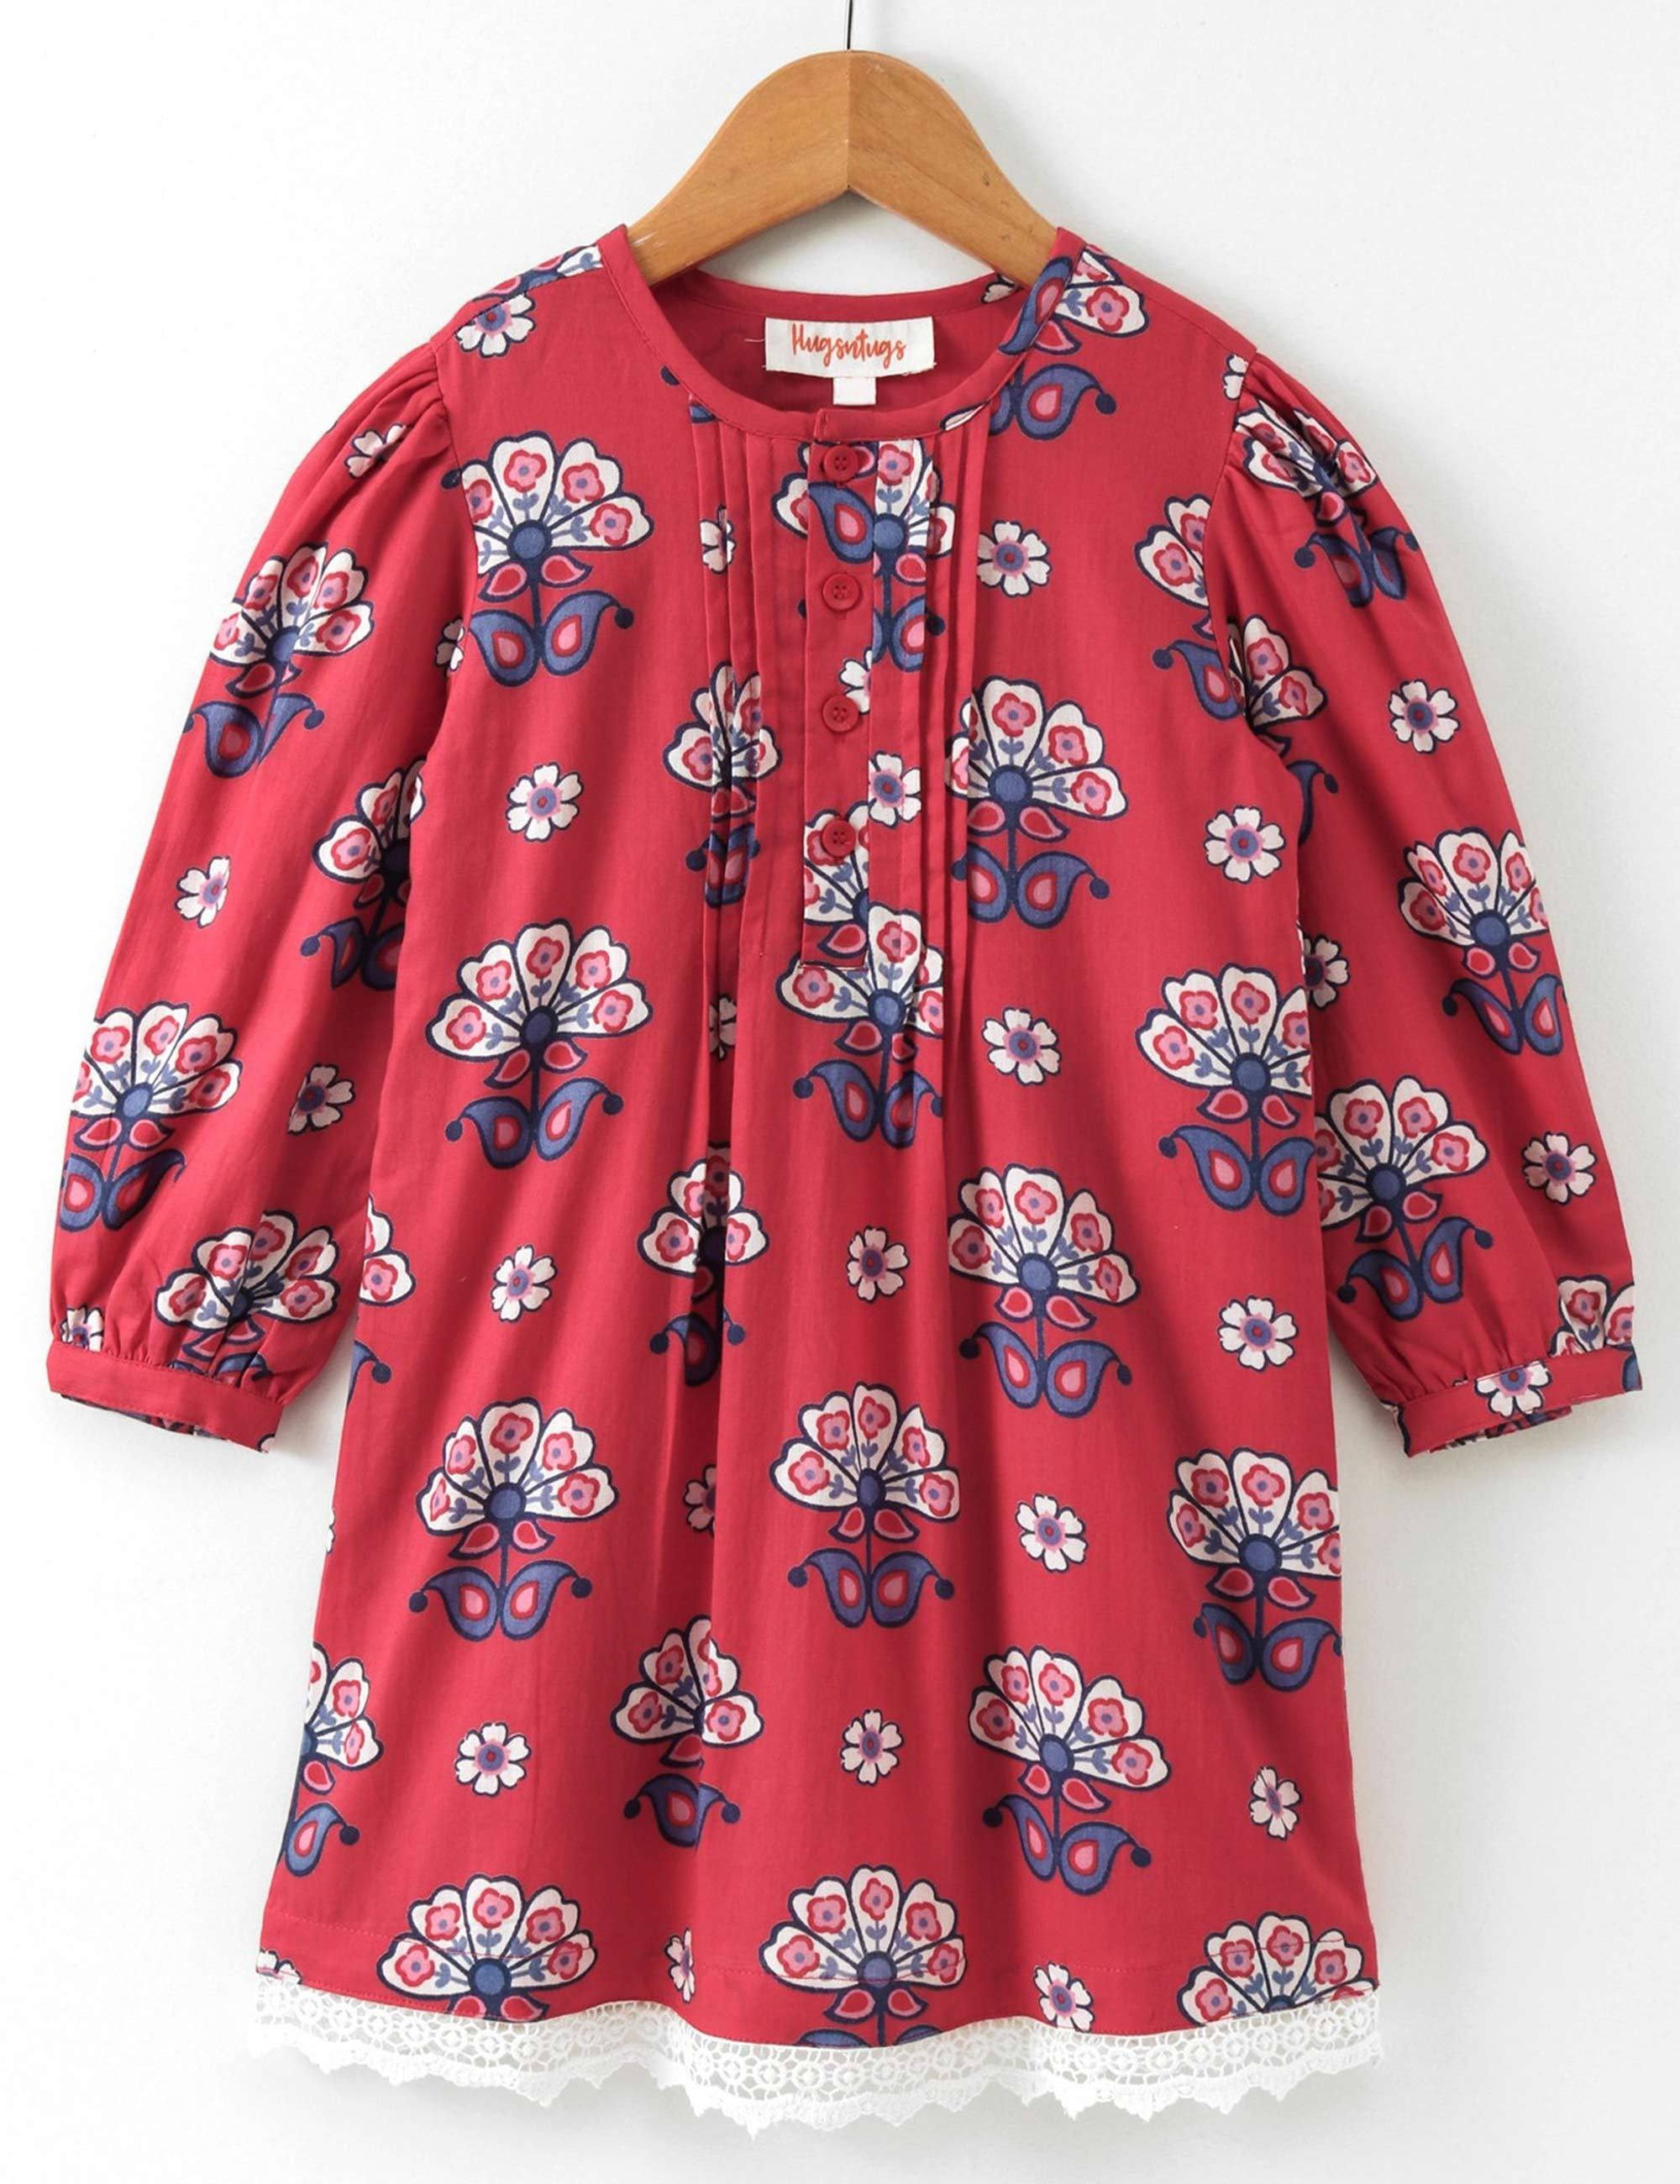 Full Sleeves Floral Print Frock